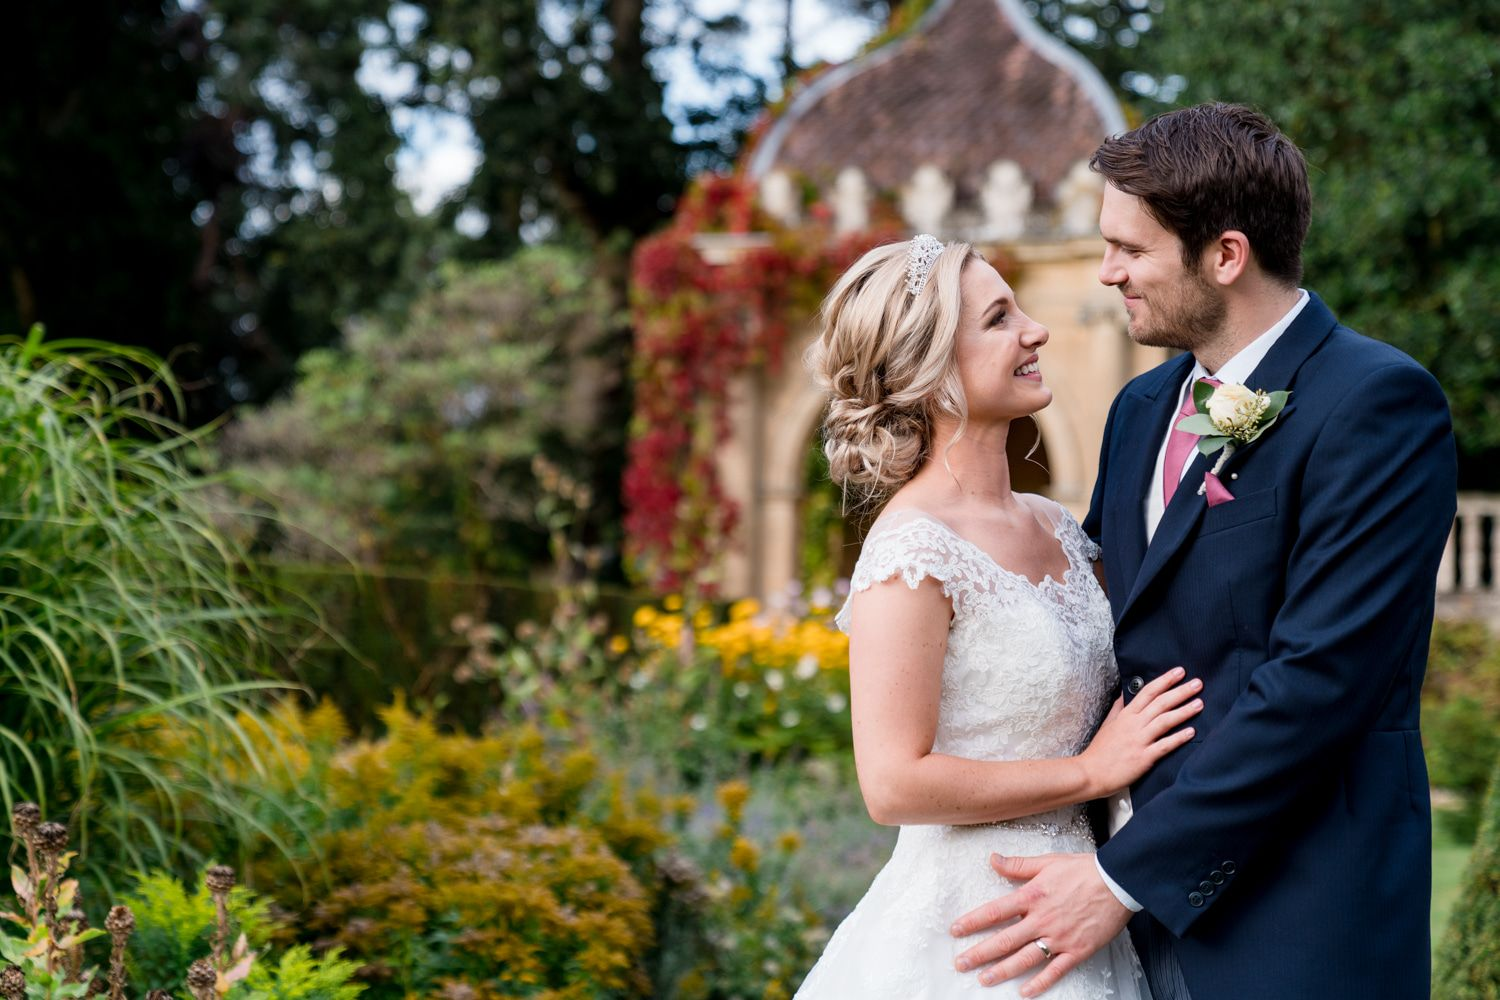 Garden Wedding Photography by Tash and Will